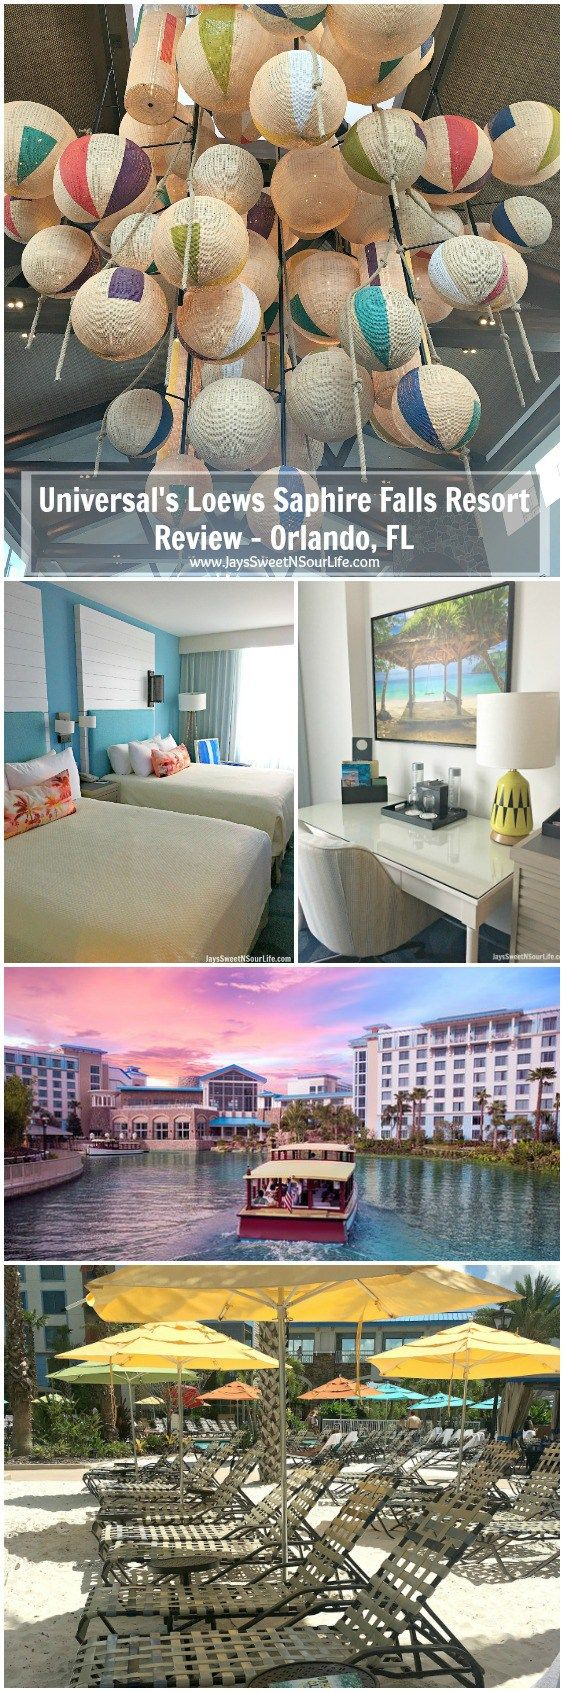 Read our full review of Universal's Loews Saphire Falls Resort in Orlando Florida. This Caribbean themed hotel is perfect for the whole family.  #LoewsSapphireFalls #ReadyForUniversal #AWonderfulPlace #Travel #Review #HotelReview  #VisitOrlando